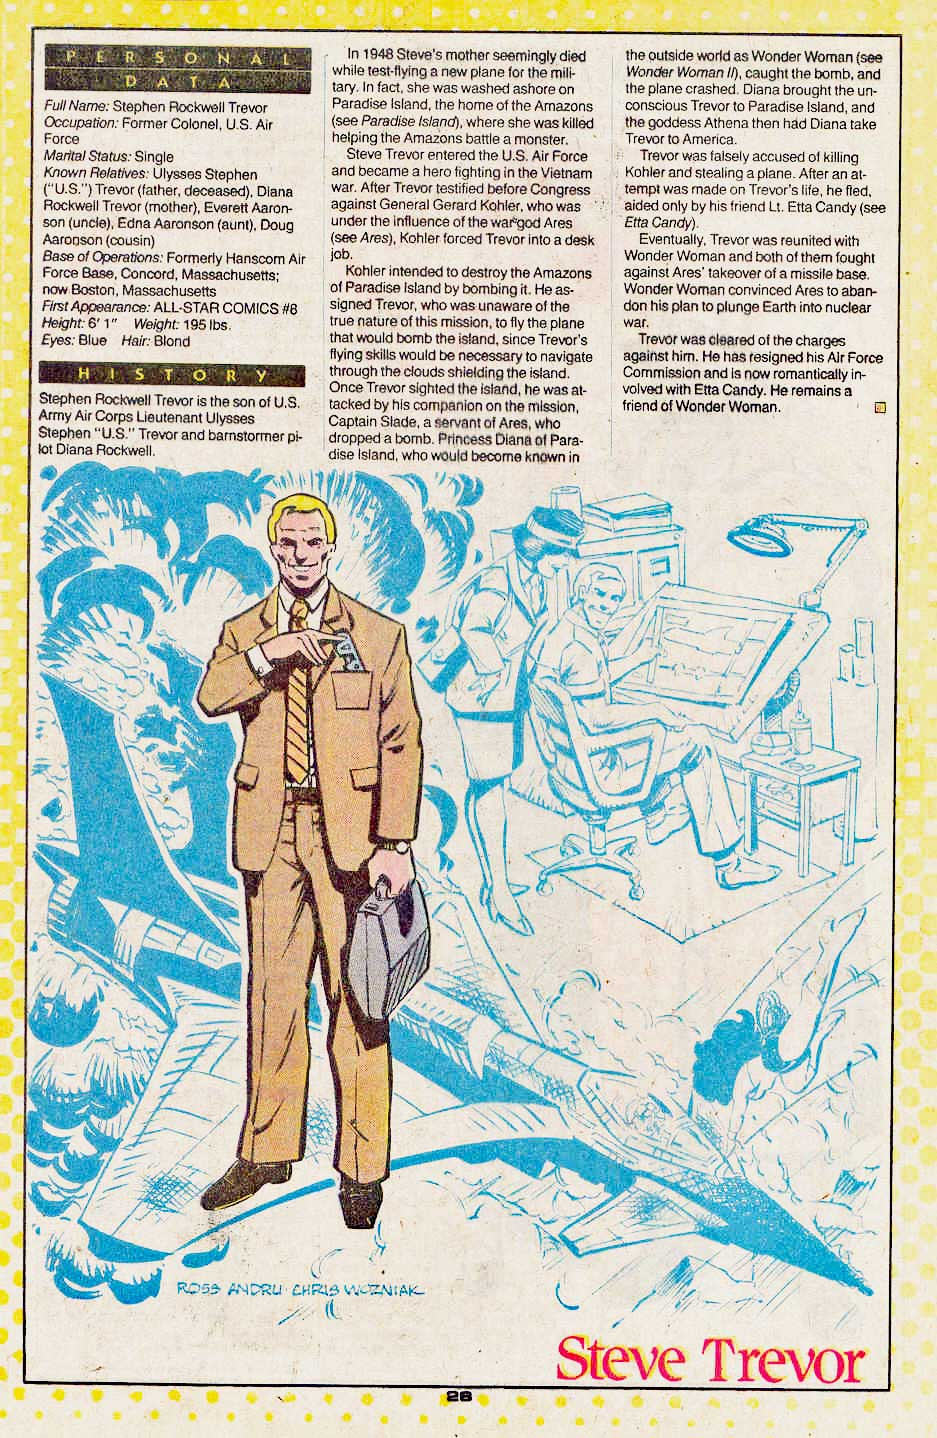 Steve Trevor by Ross Andru and Chris Wozniak - Who's Who: Update '88, vol. 4